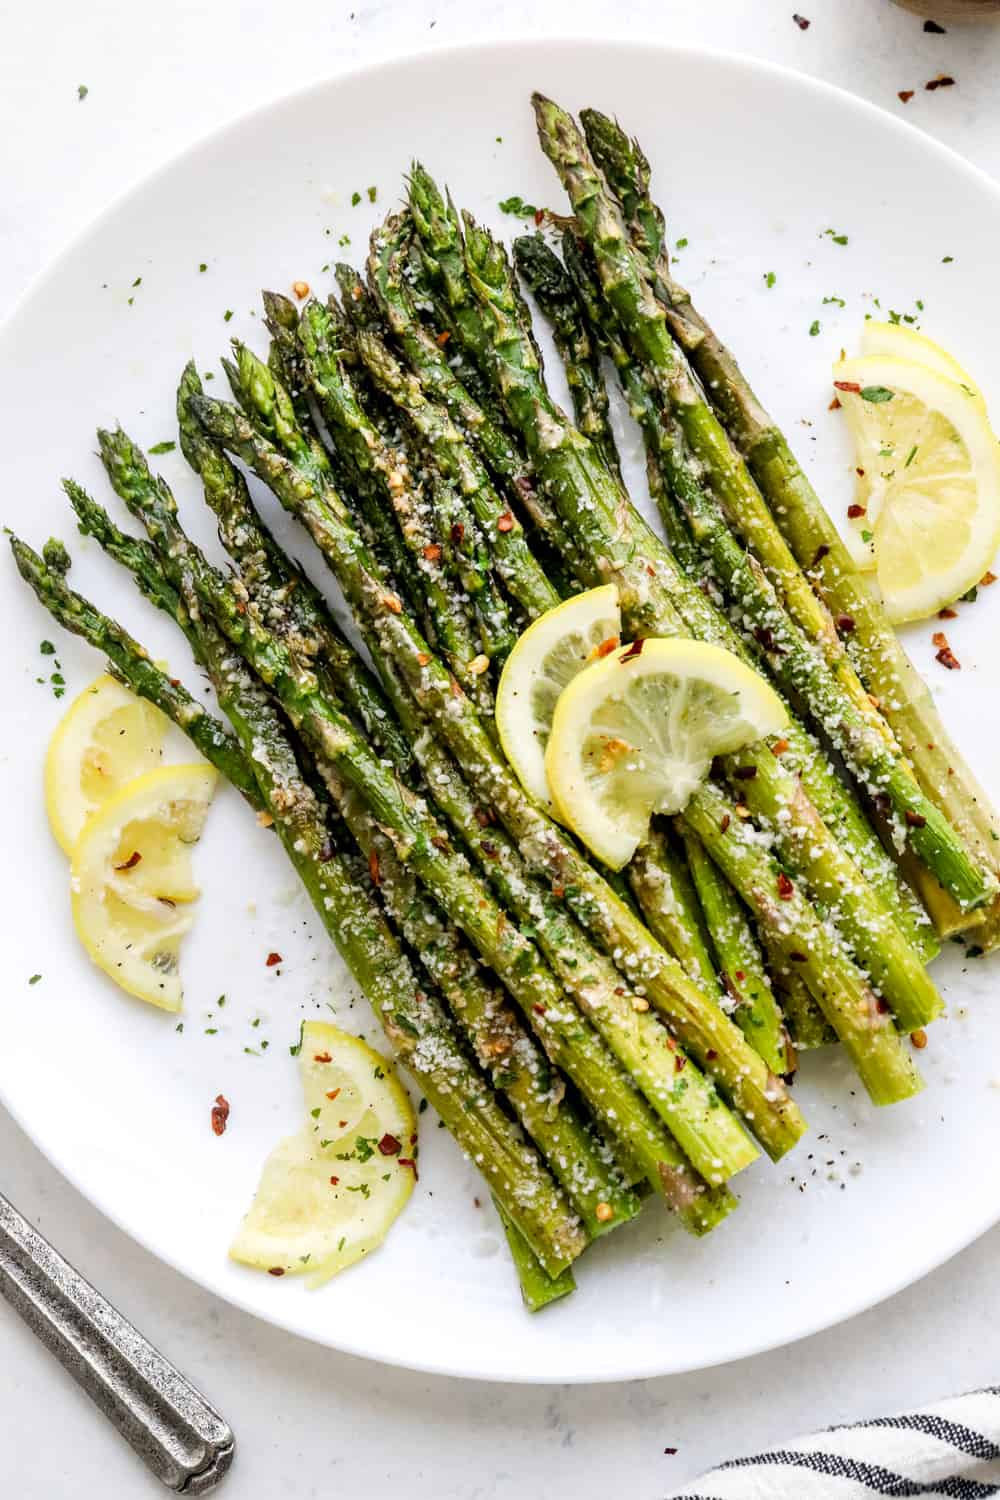 Cooked asparagus in a pile on a round white plate with sliced lemon laying on top of it